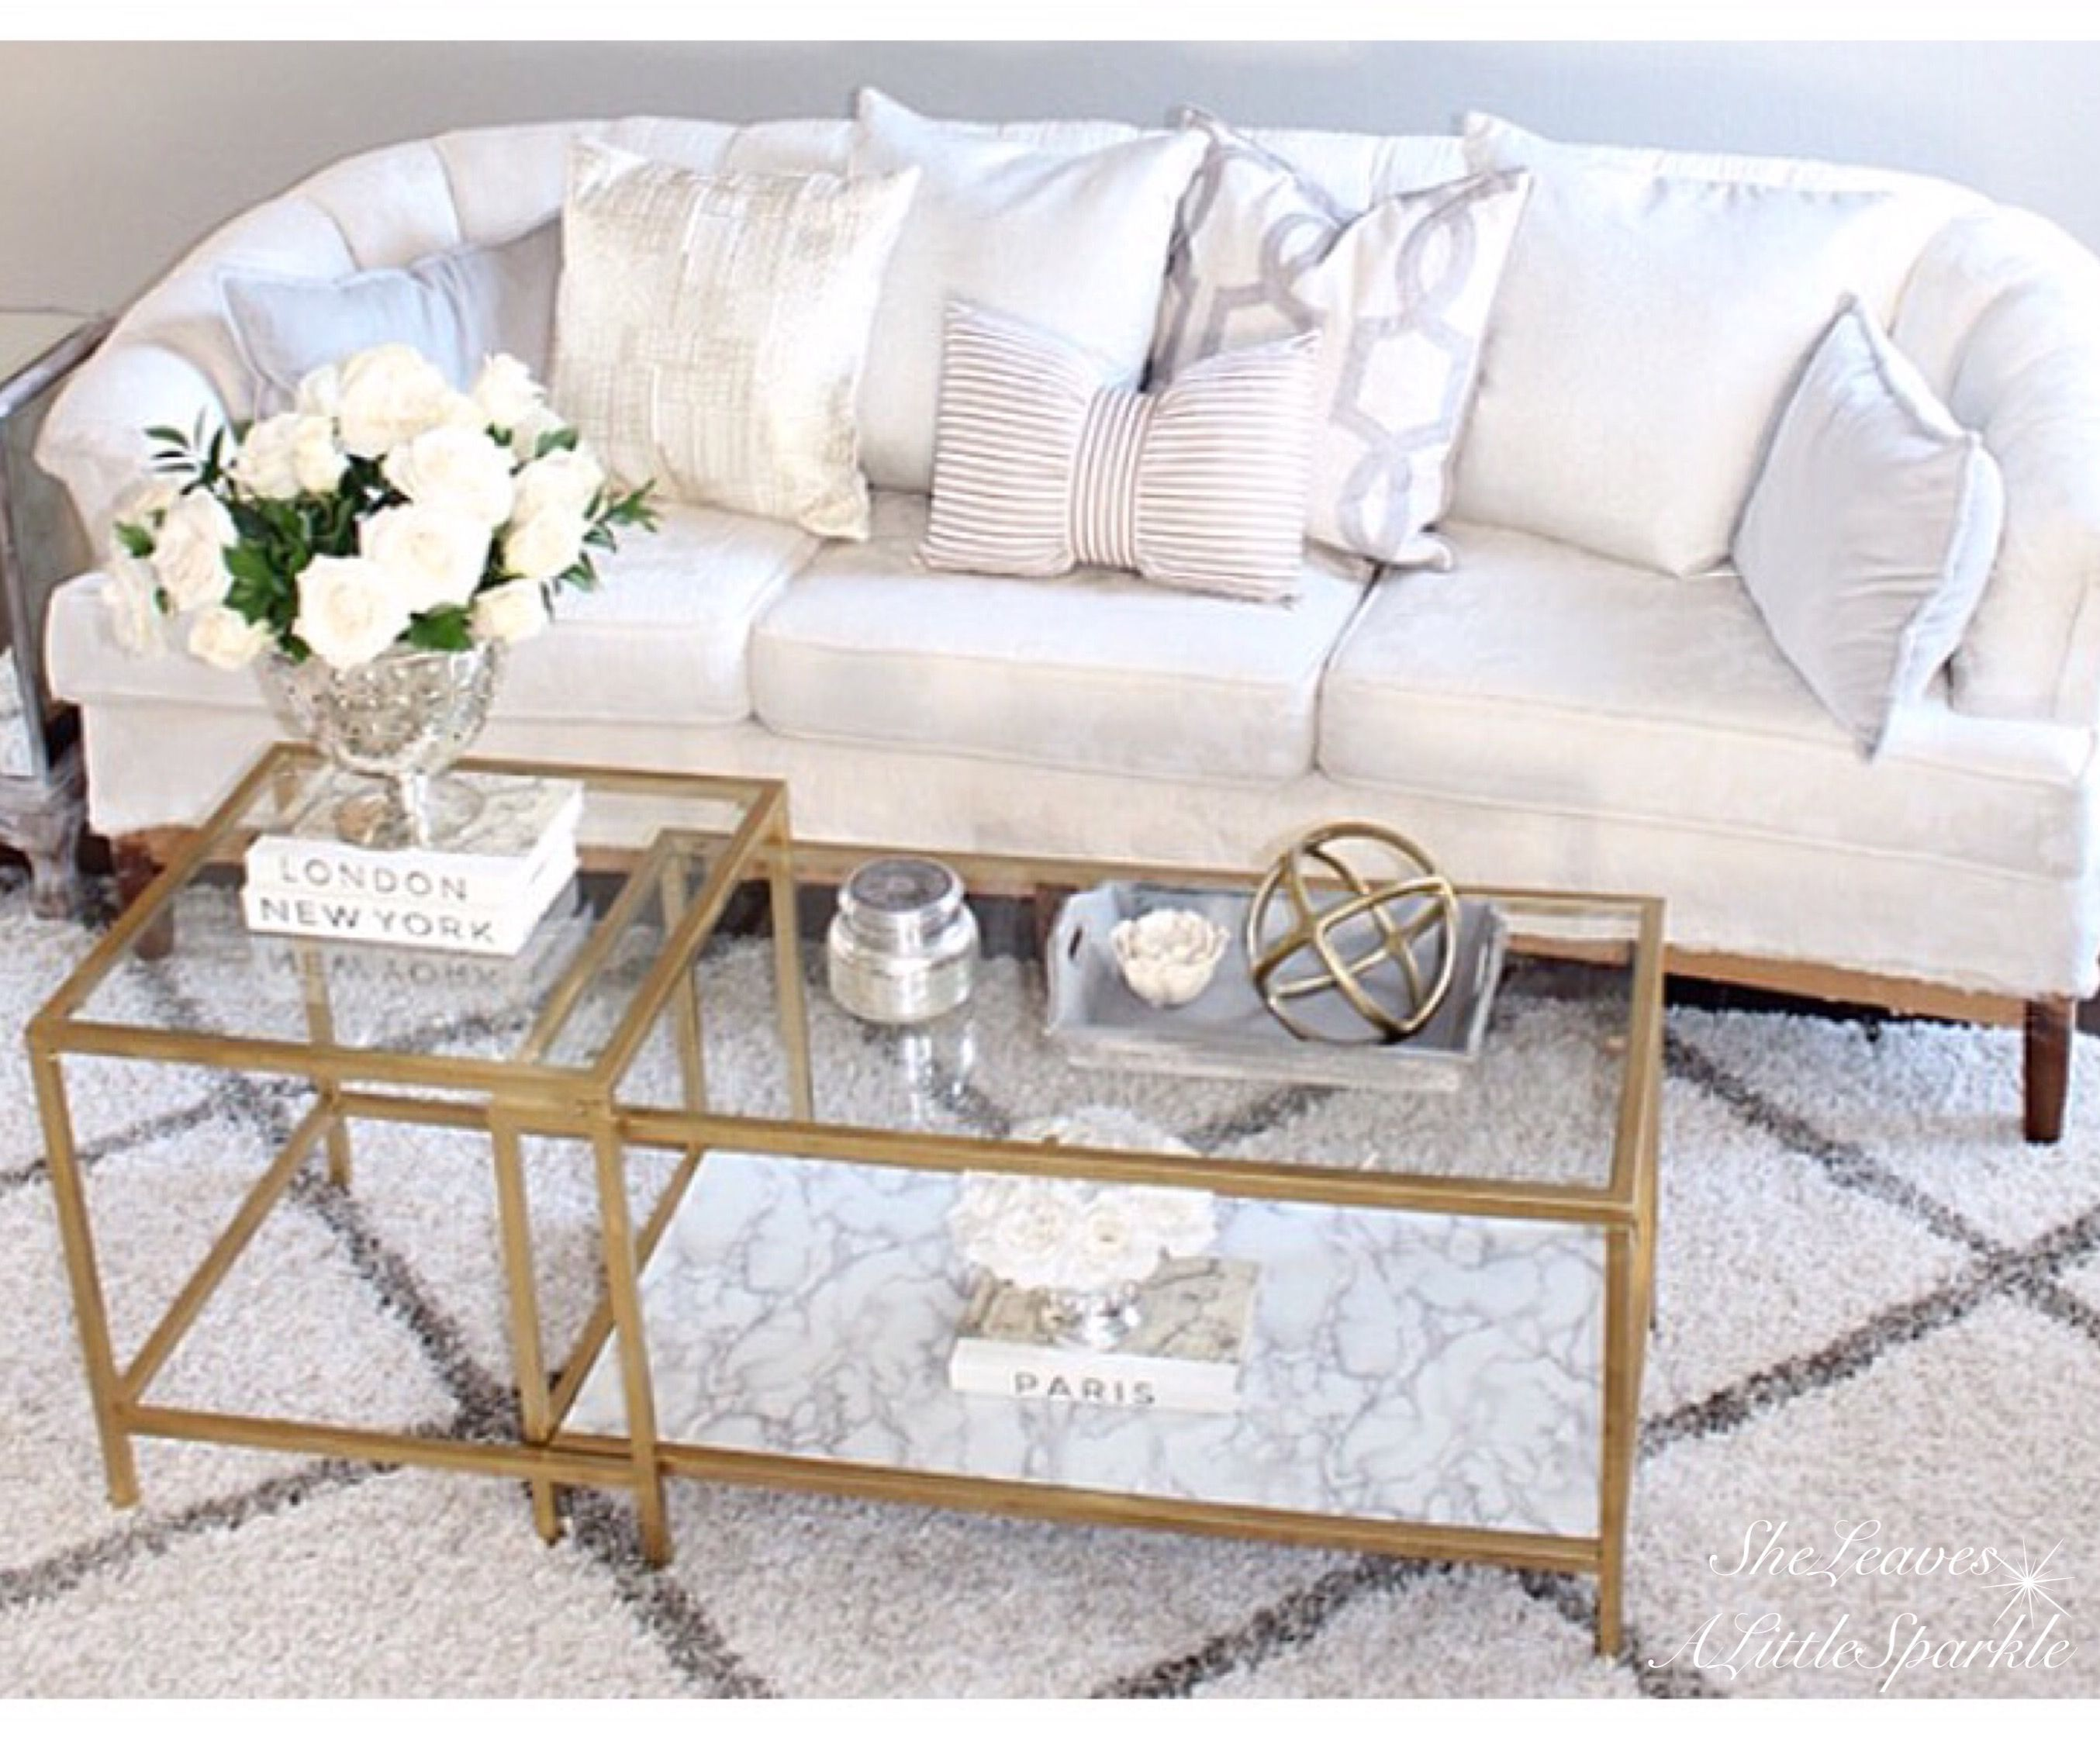 Most Popular Coffee Tables   SheLeavesALittleSparkle. DIY IKEA Hack Vittsjö  Nesting Tables. Gold Marble Glass Coffee Table. Restoration Hardware  Baluster ...